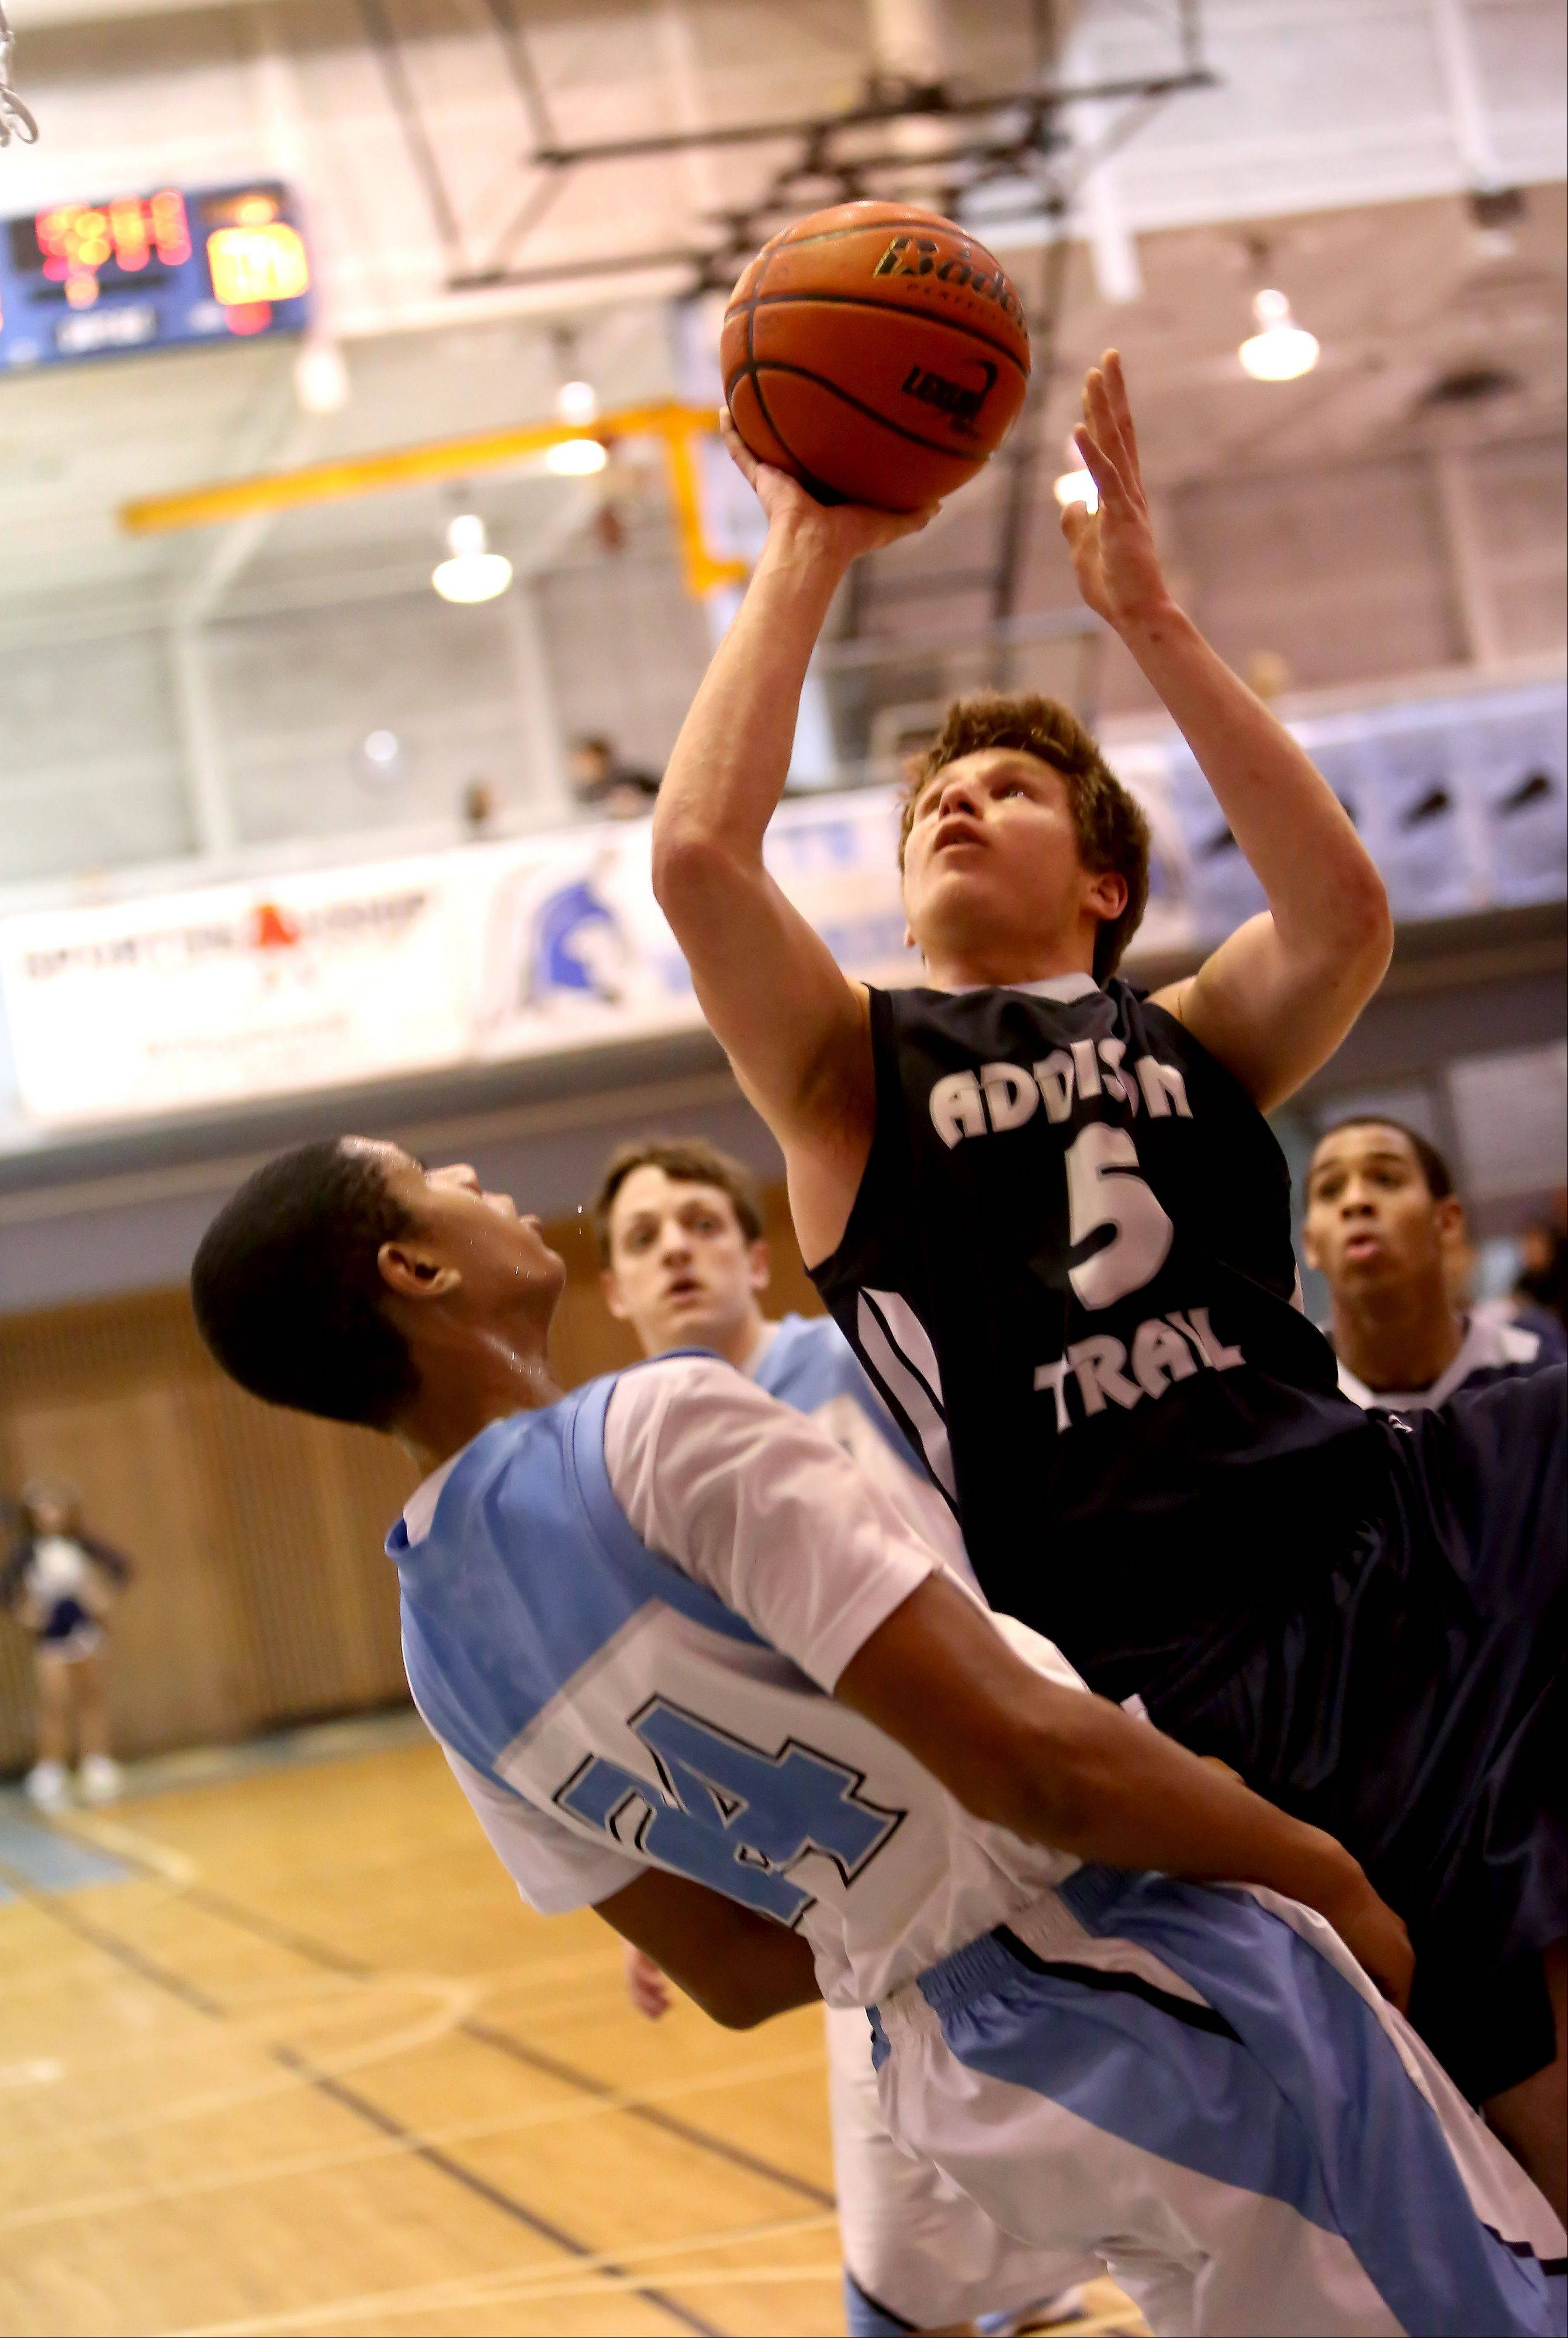 James Pupillo of Addison Trail, right, attempts a basket as he runs into Kyle Rushing of Willowbrook , left.